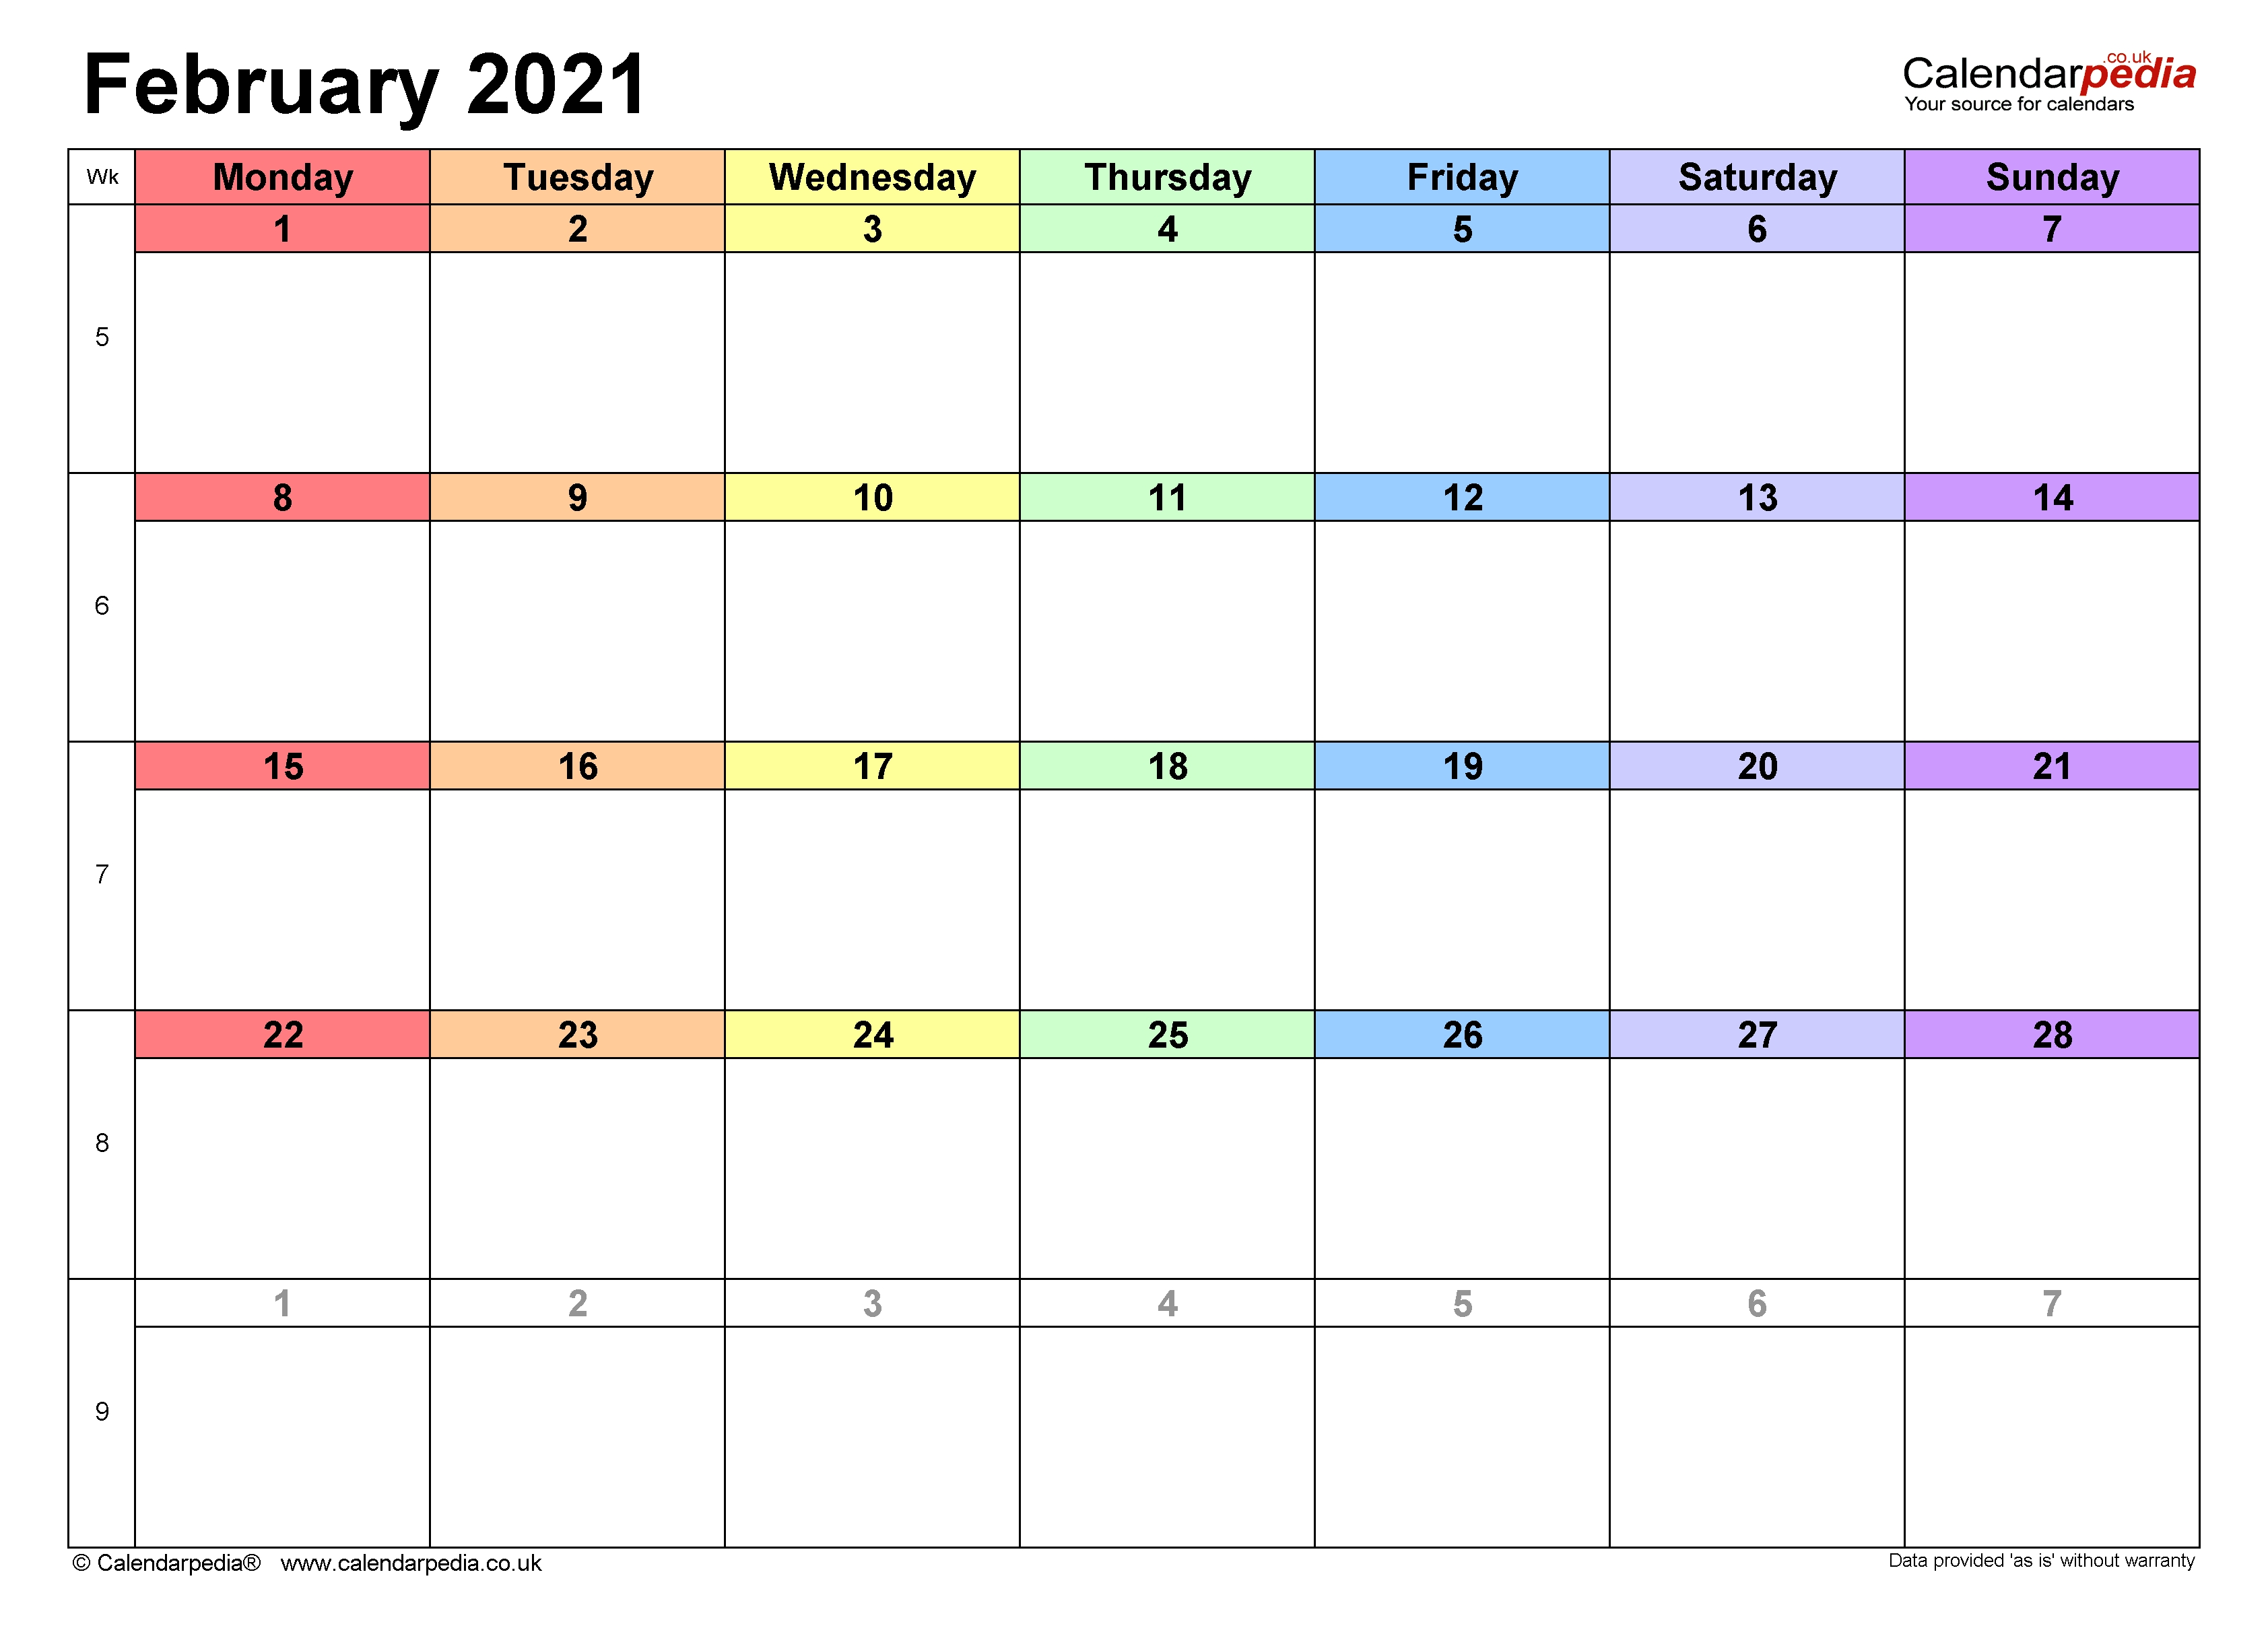 Calendar February 2021 Uk With Excel, Word And Pdf Templates February To July 2021 Calendar